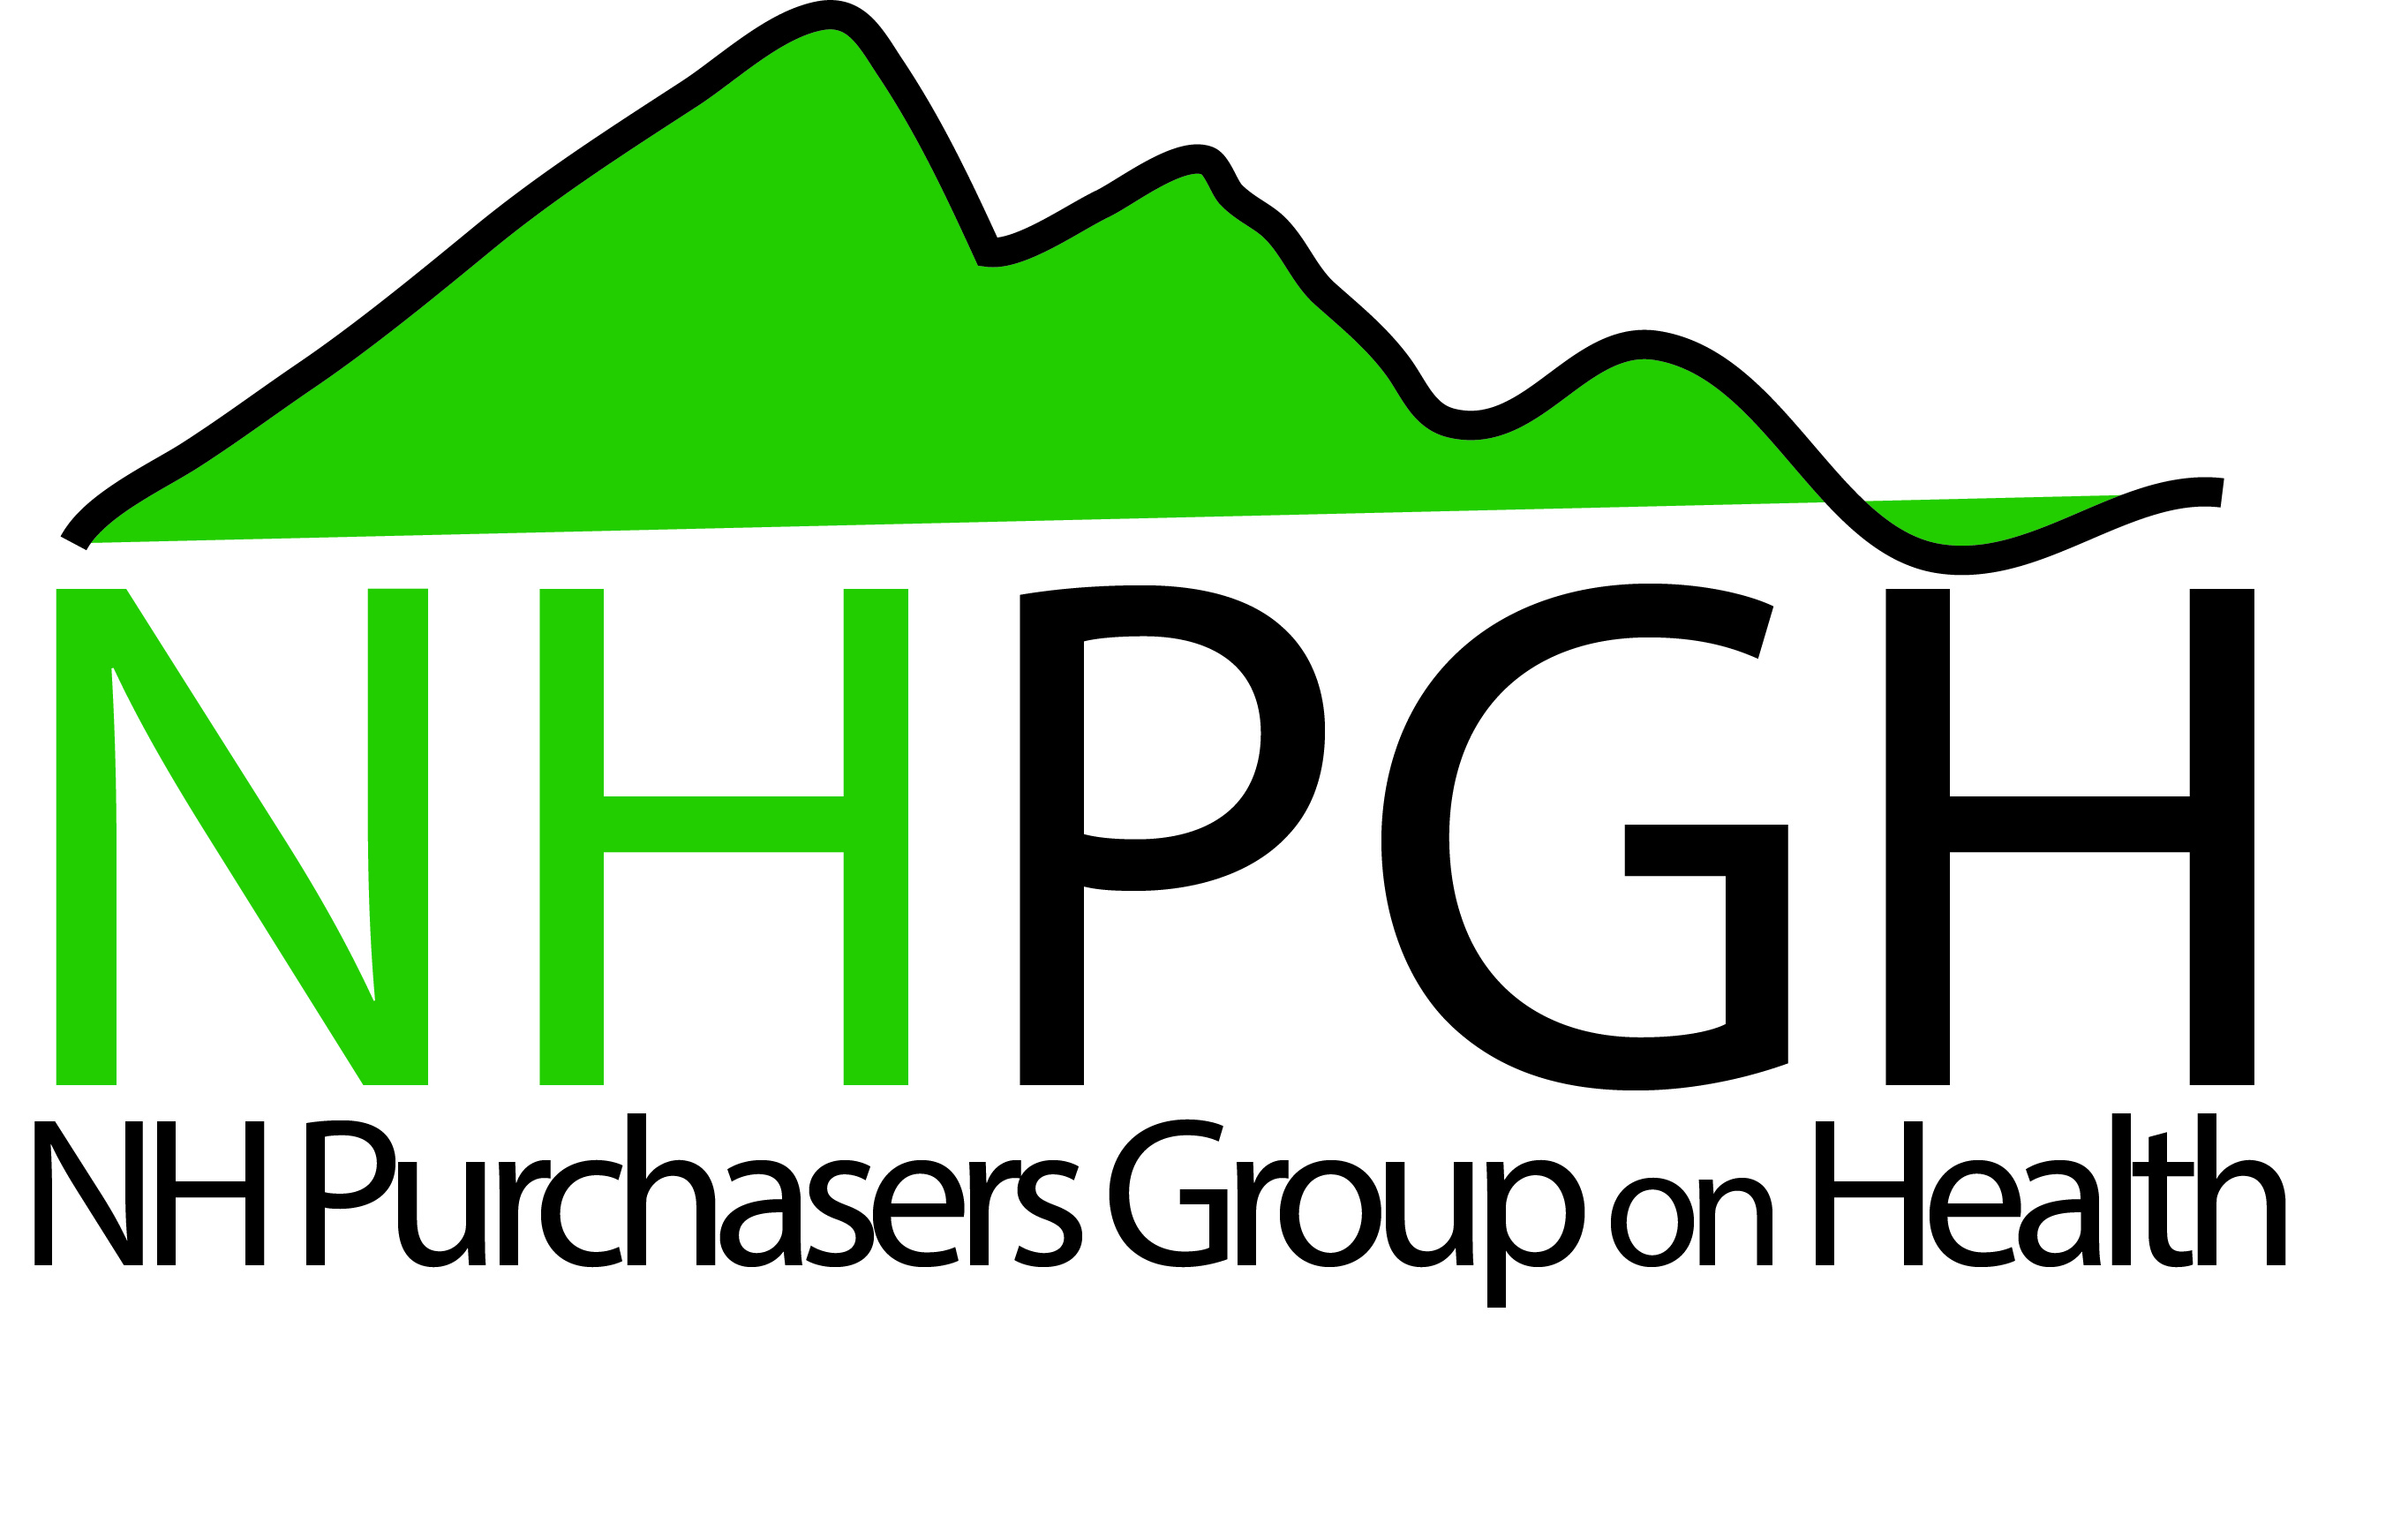 New Hampshire Purchasers Group on Health